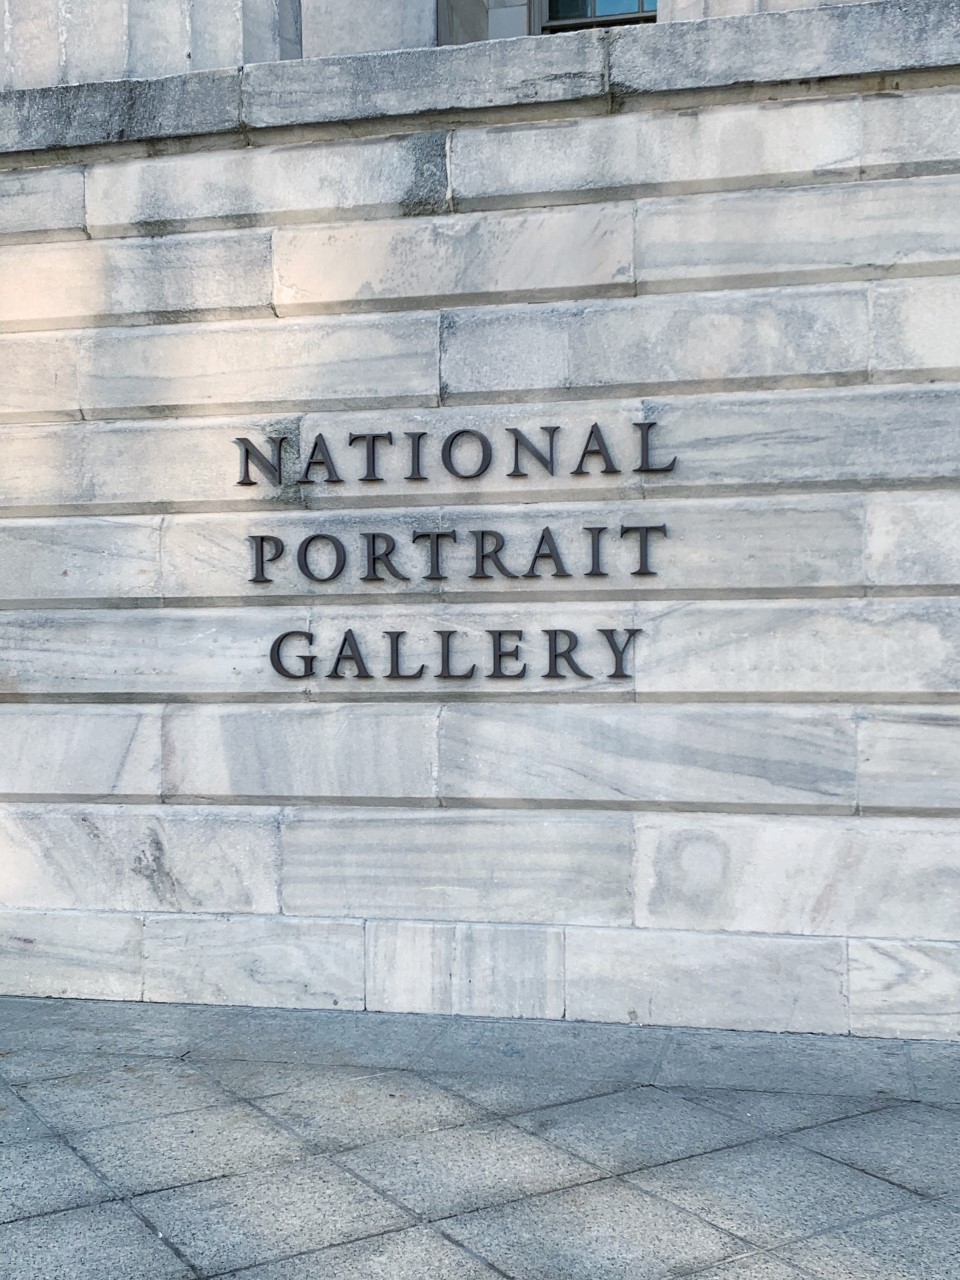 Visiting the National Portrait Gallery in Washington, D.C.